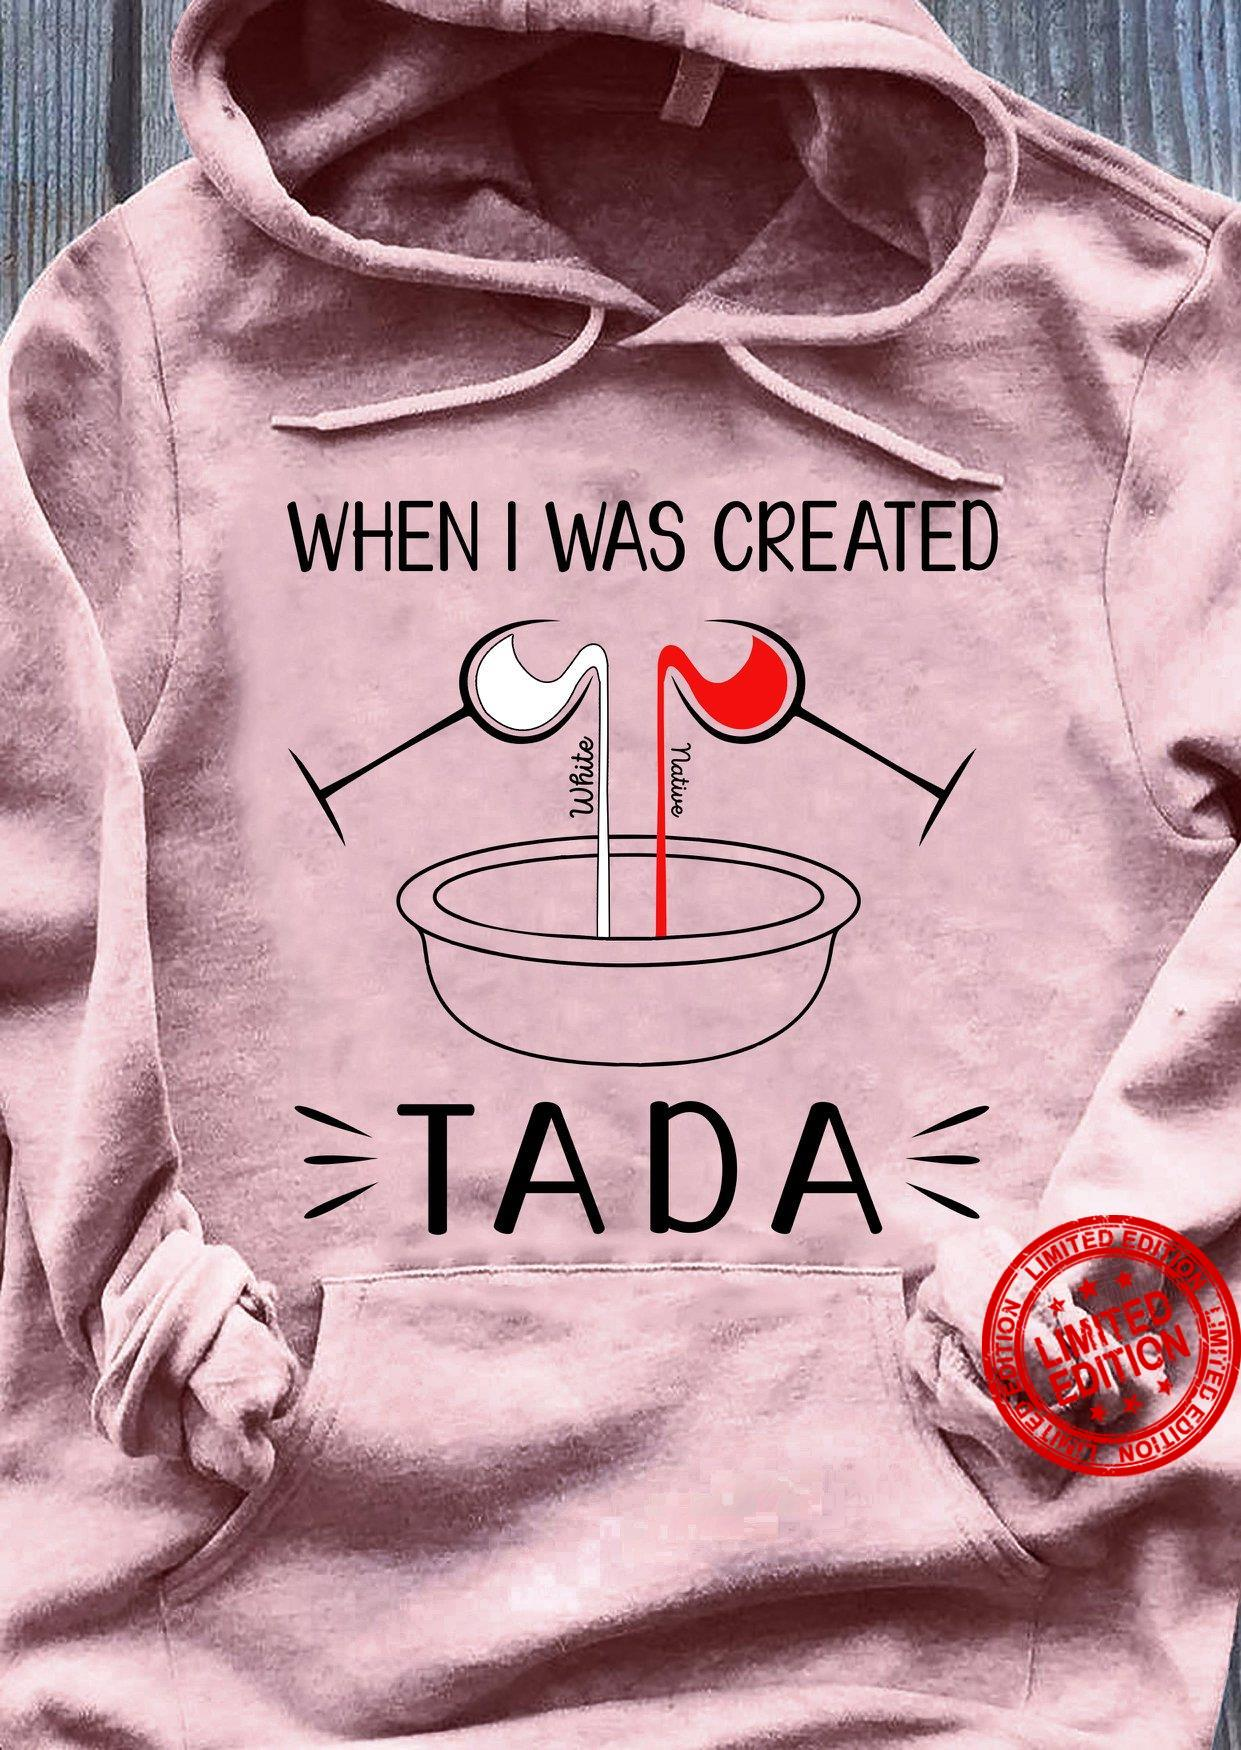 When I Was Created White Native Ta Da Shirt